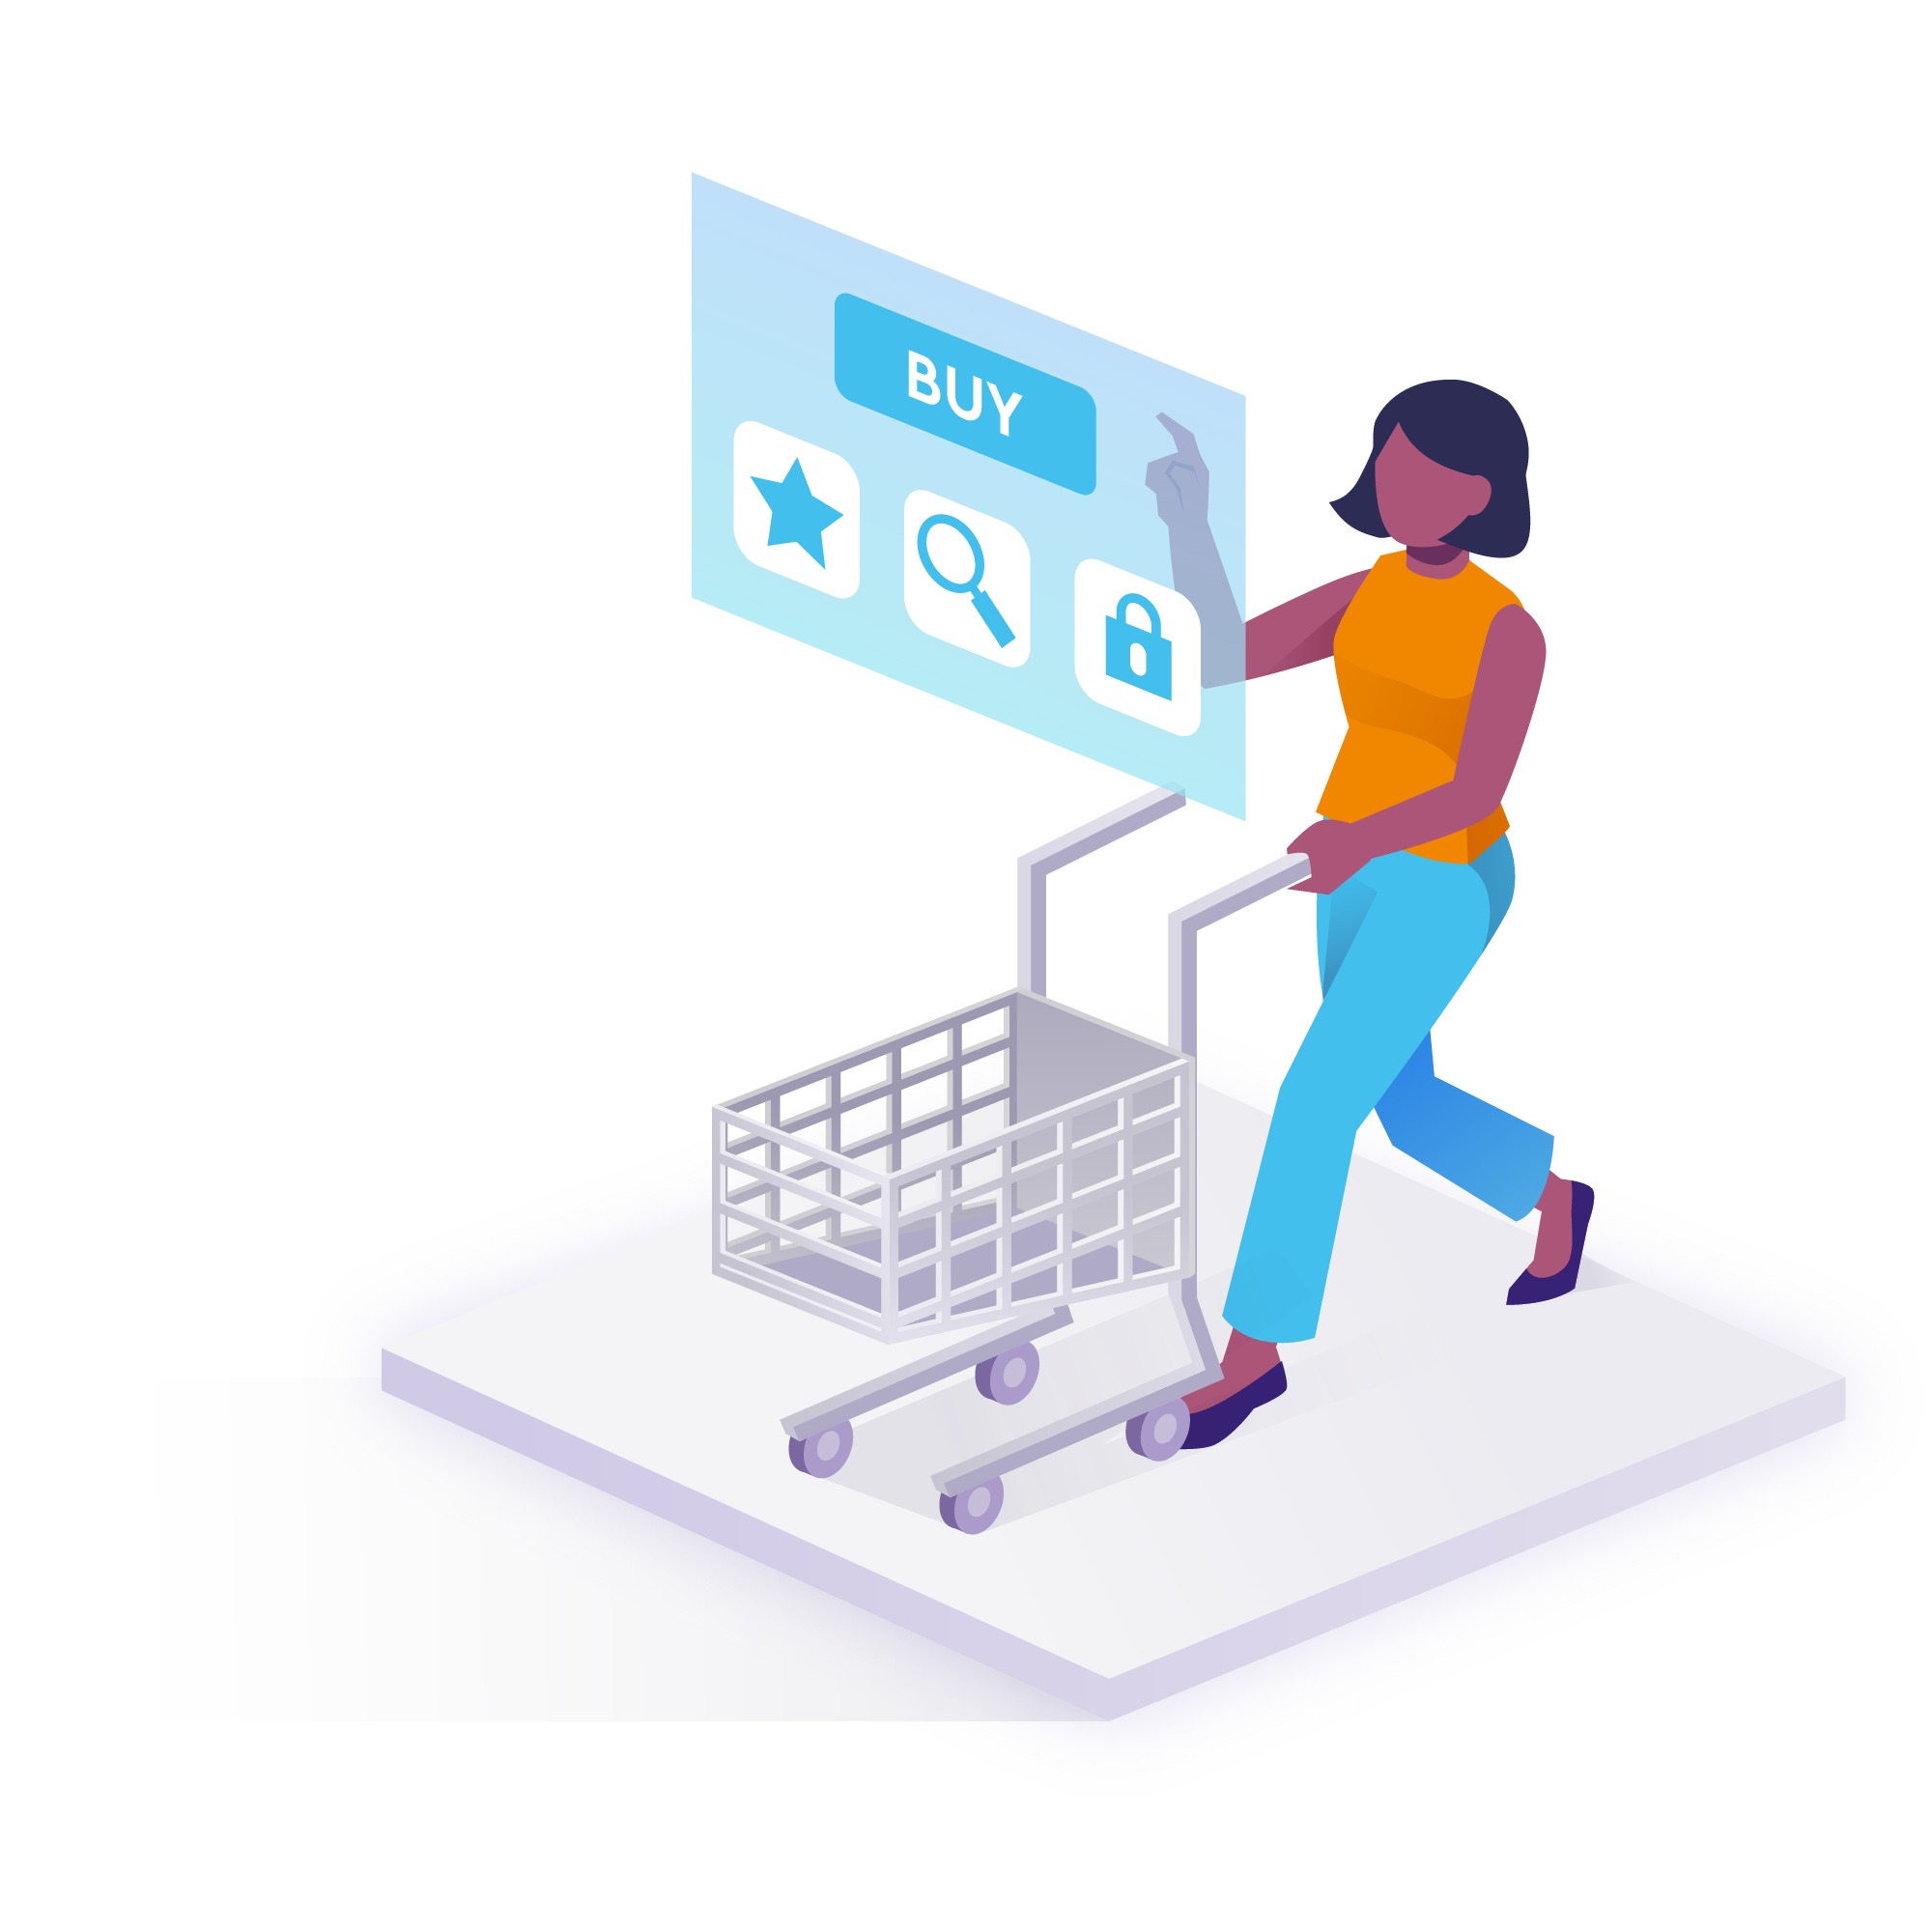 Personalized customer experience - Retail & eCommerce